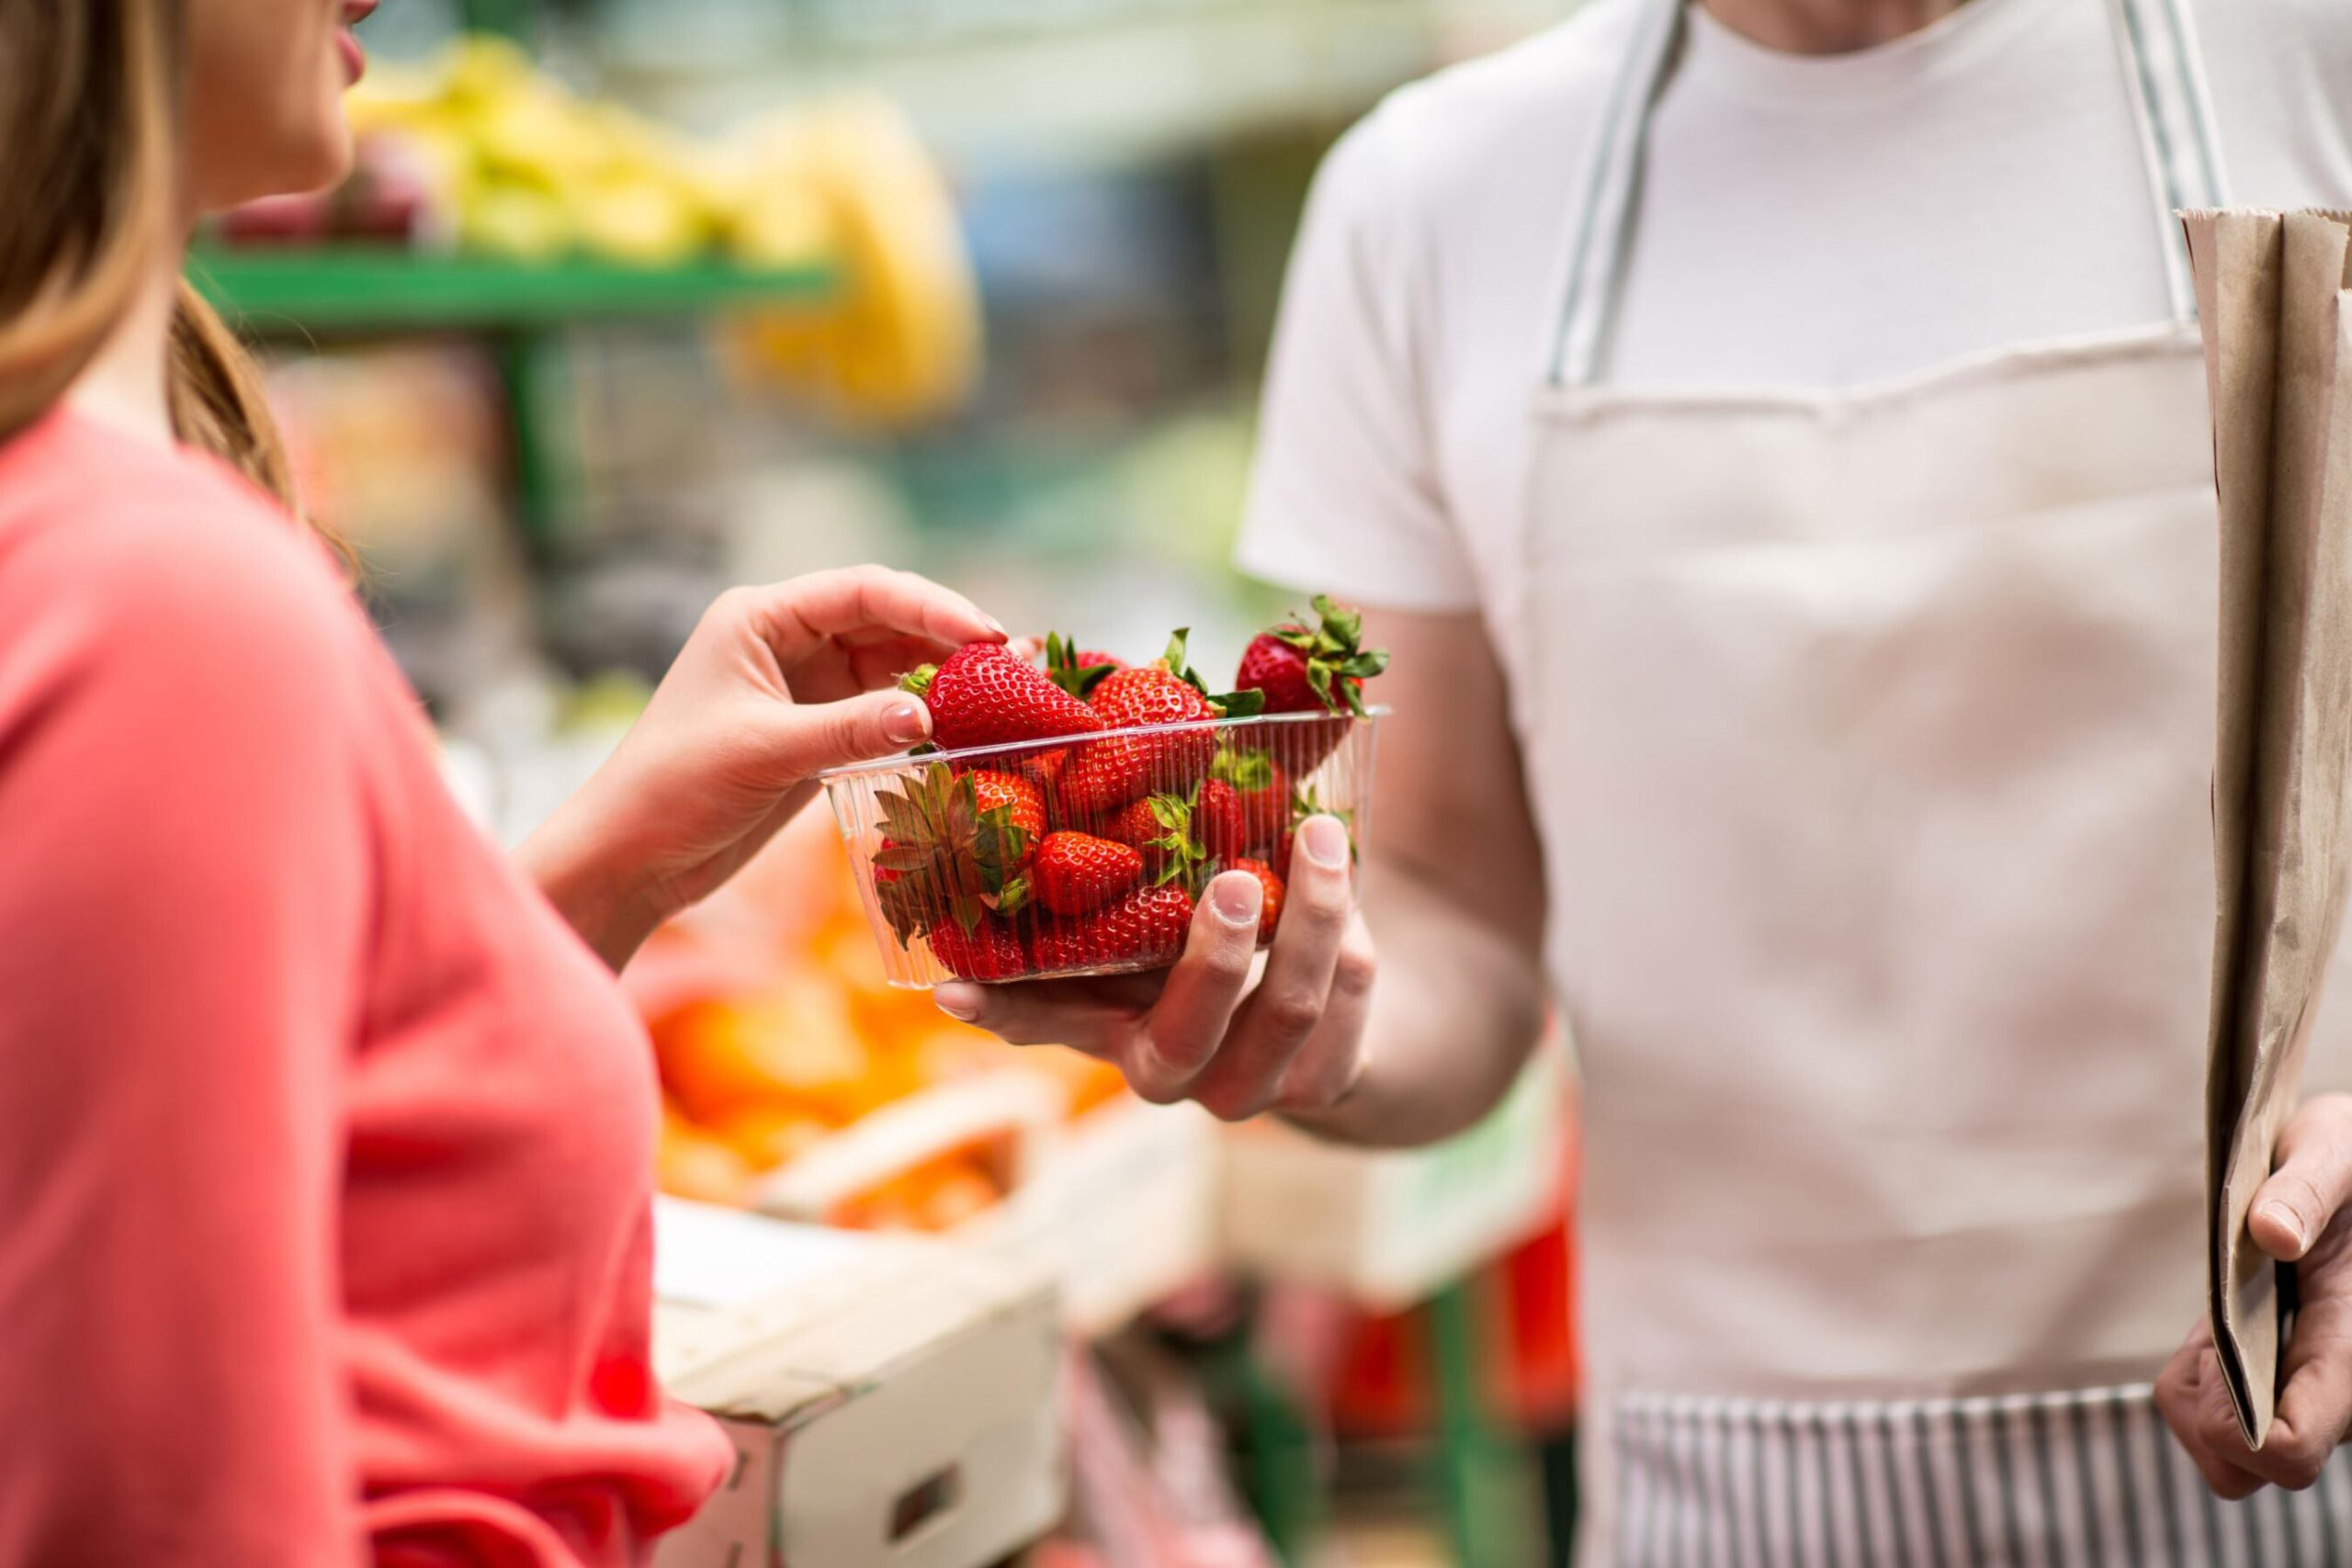 <i>Shutterstock</i><br/>Eating a plate full of colorful foods like strawberries and peppers